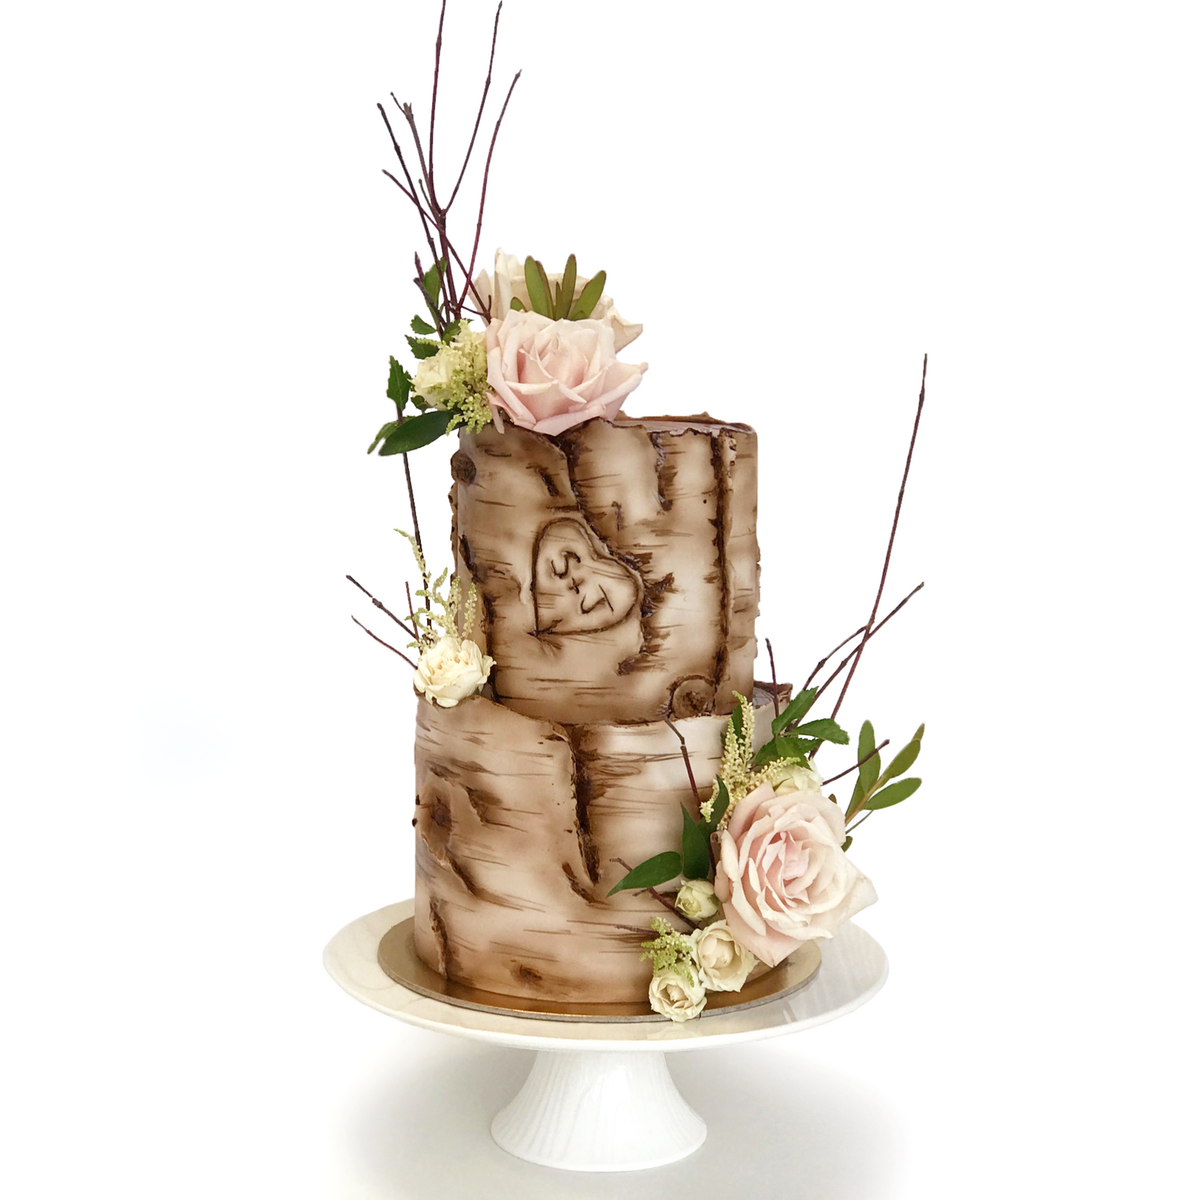 Whippt Kitchen - birch bark wedding cake 2b